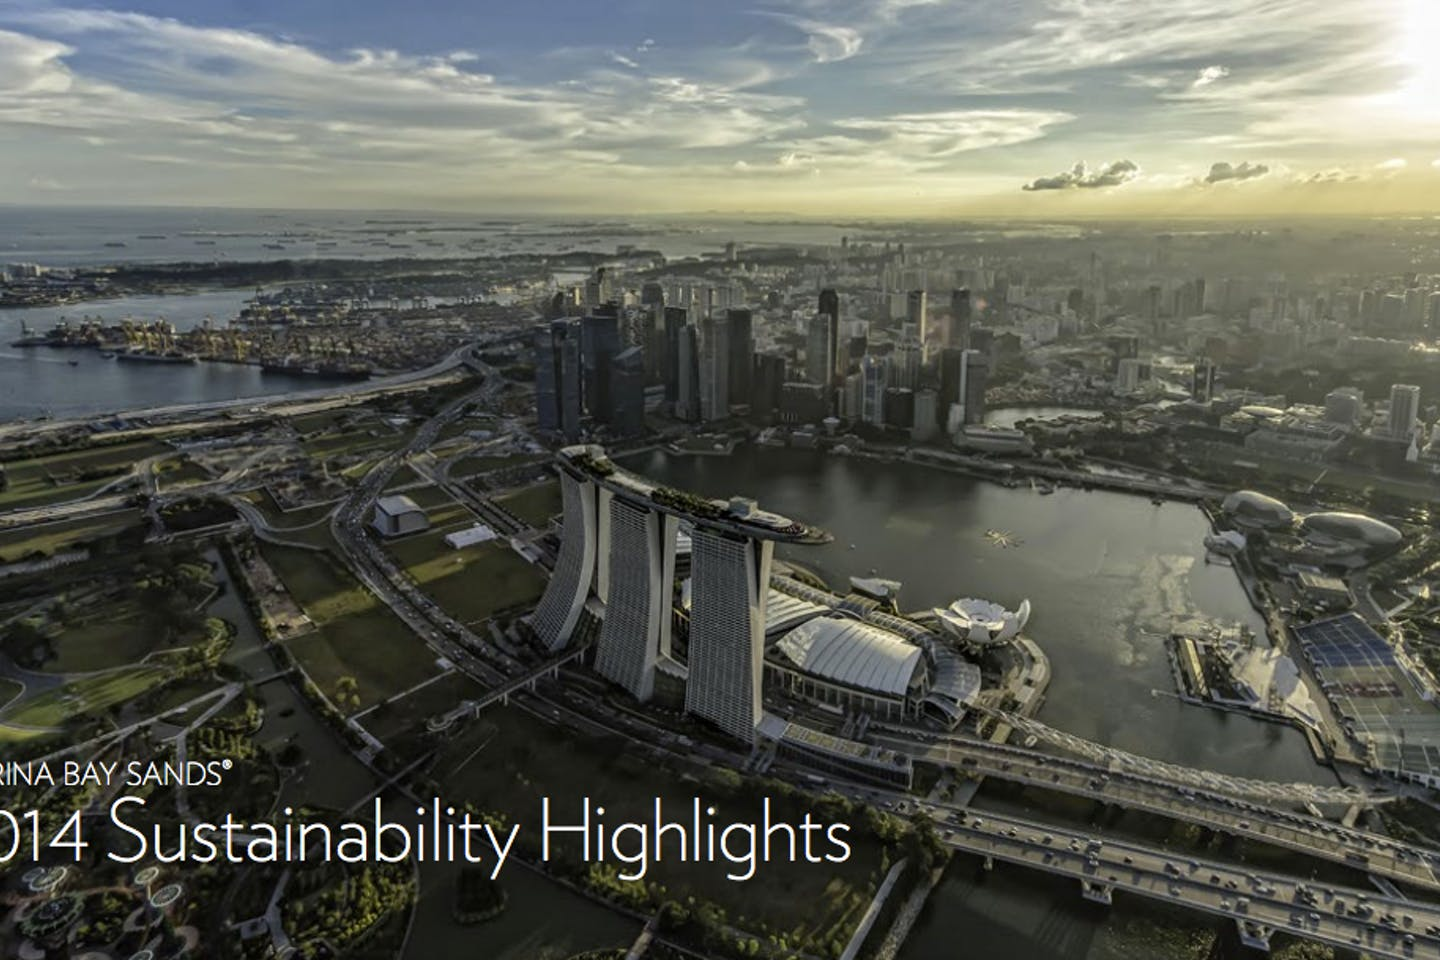 CSR Asia's sustainability report for Marina Bay Sands. Image: Marina Bay Sands